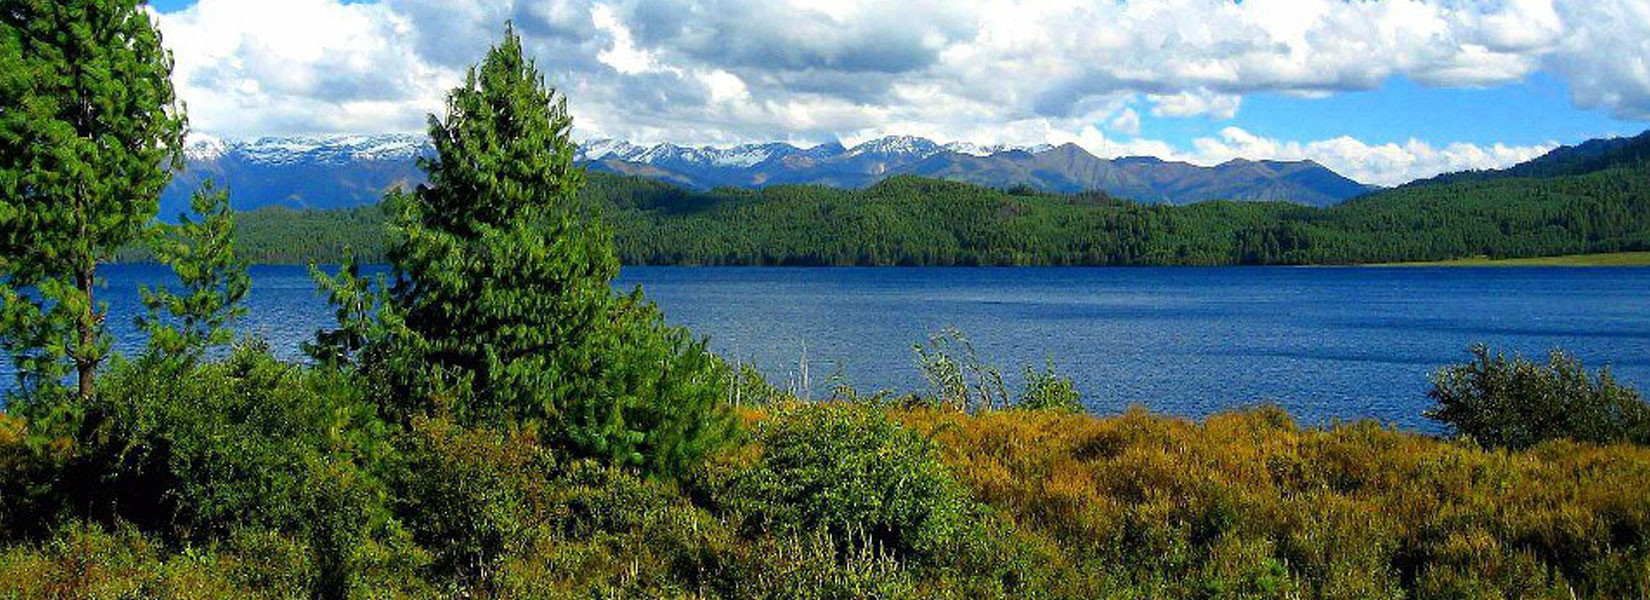 Rara Lake Trek 15 days